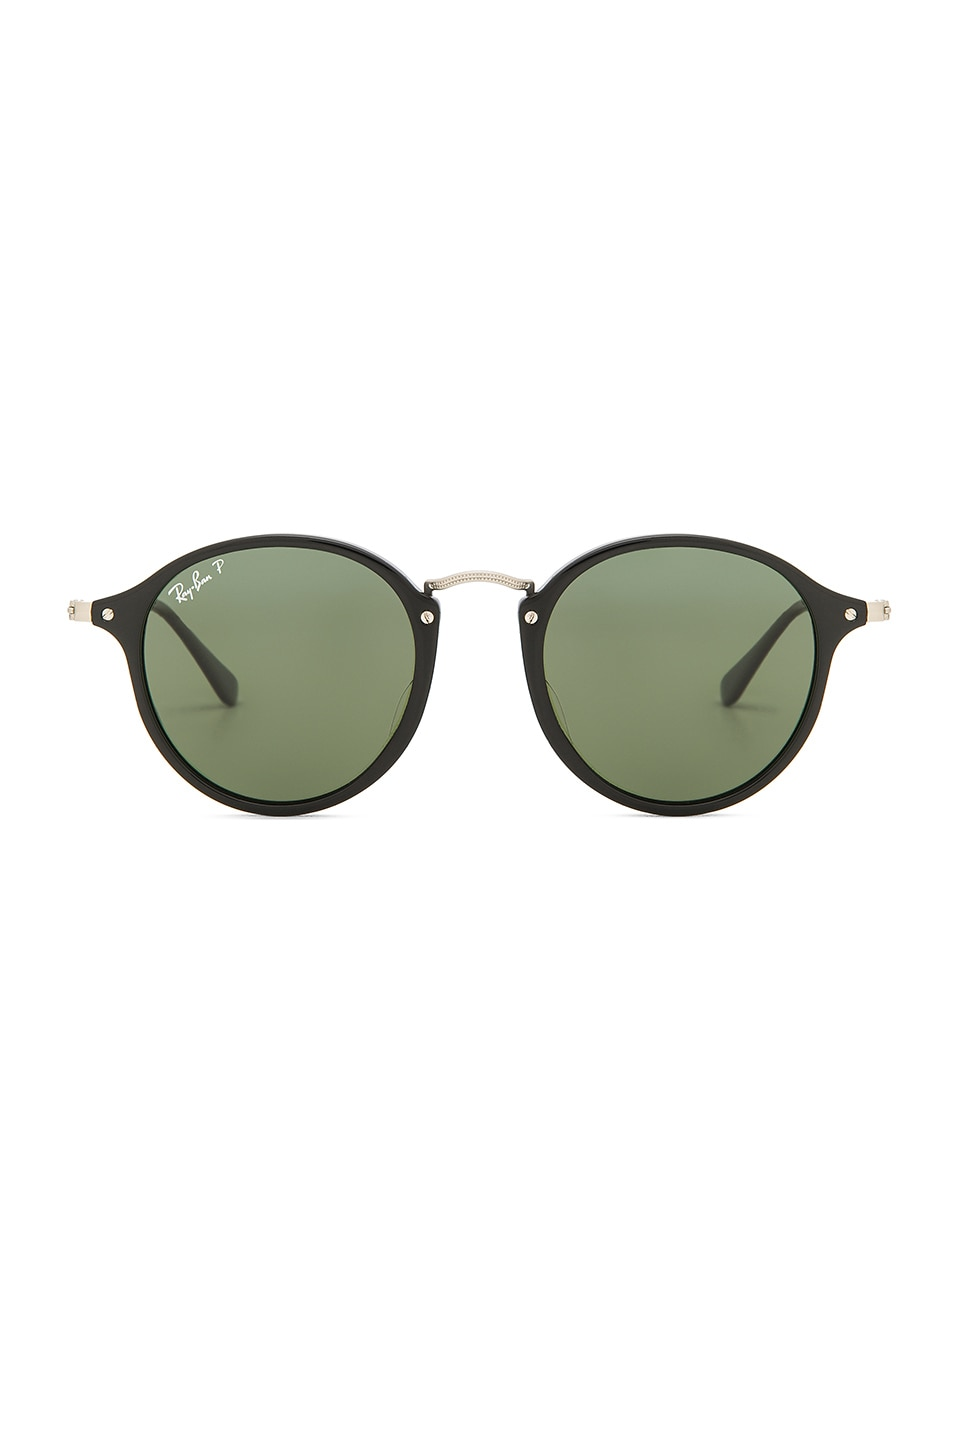 Ray-Ban Round Fleck in Black